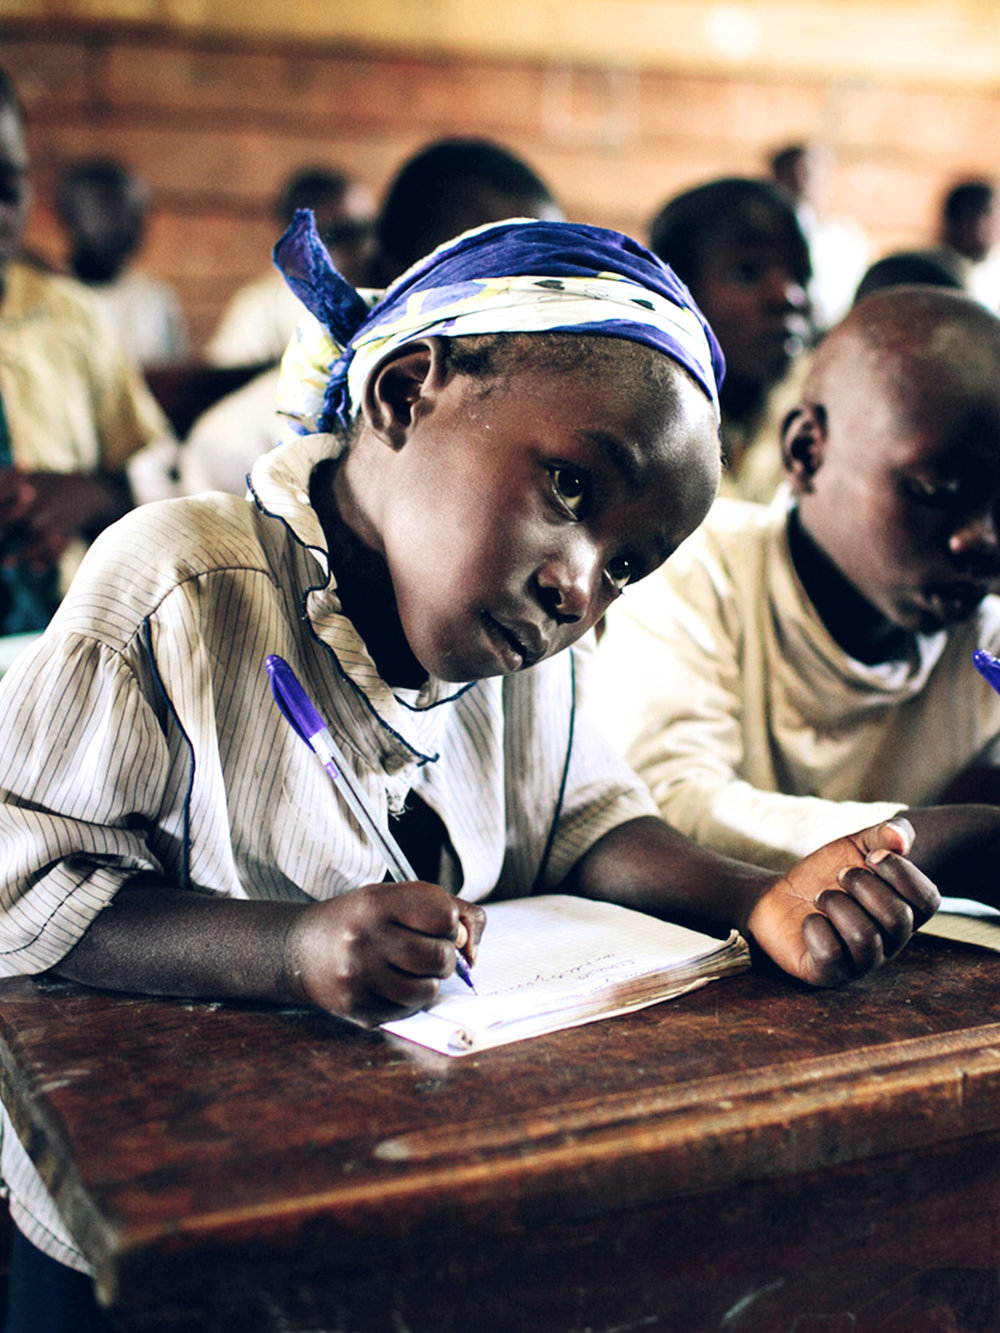 Our Vision - Our vision is to improve the standard of and access to girls' education globally.Learn More